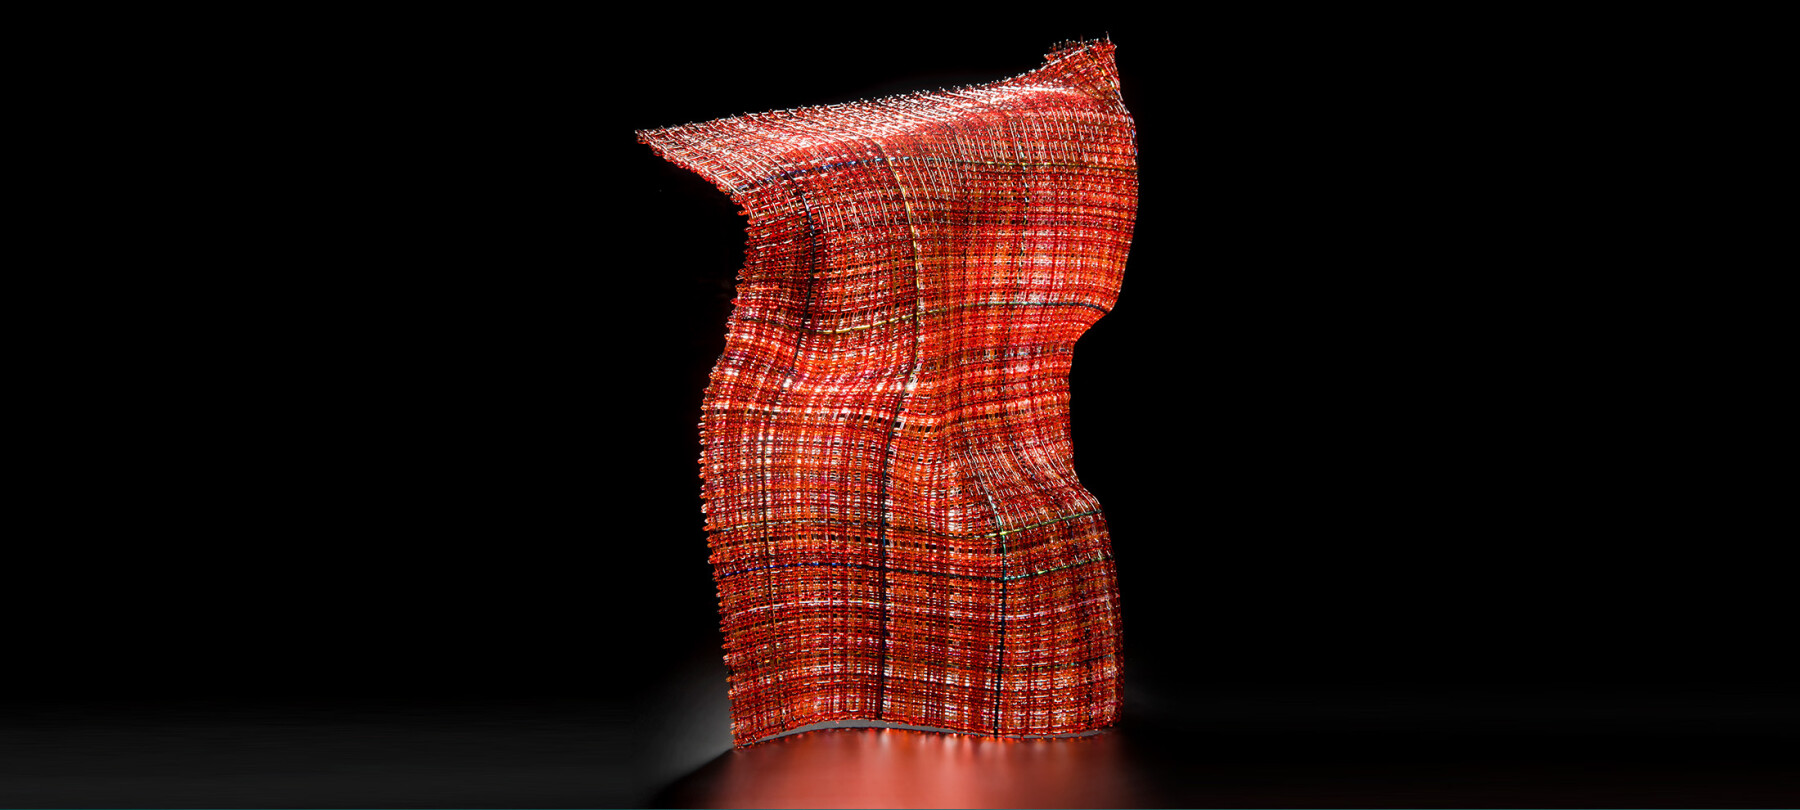 CSHG01 – Hidden Gestures (Red) – Cathryn Shilling (front)